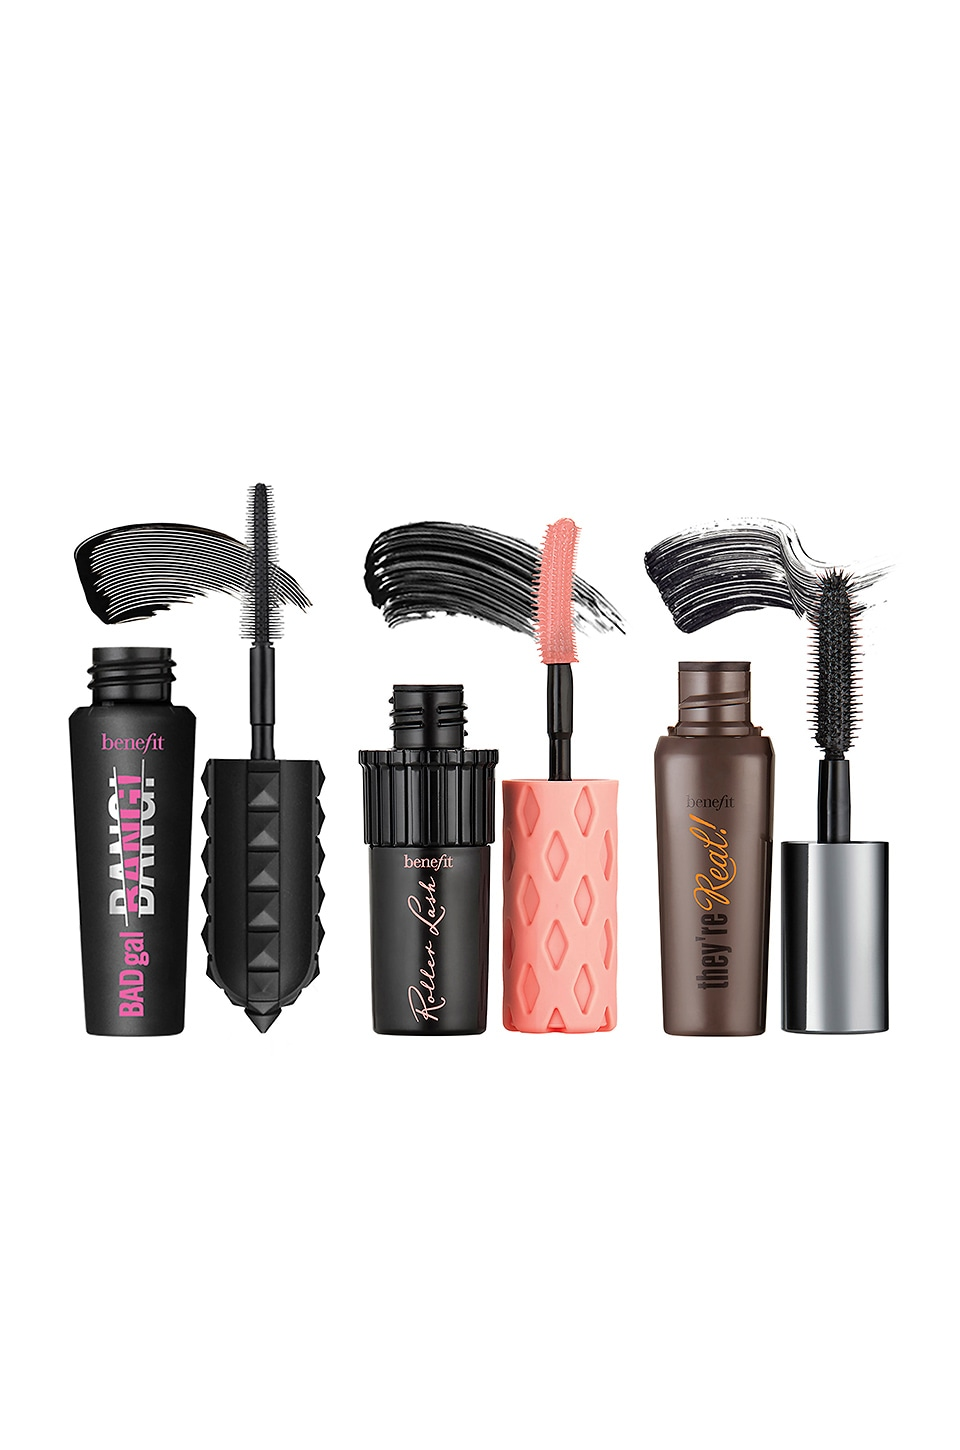 Benefit Cosmetics Lash Leaders Mini Mascara Trio